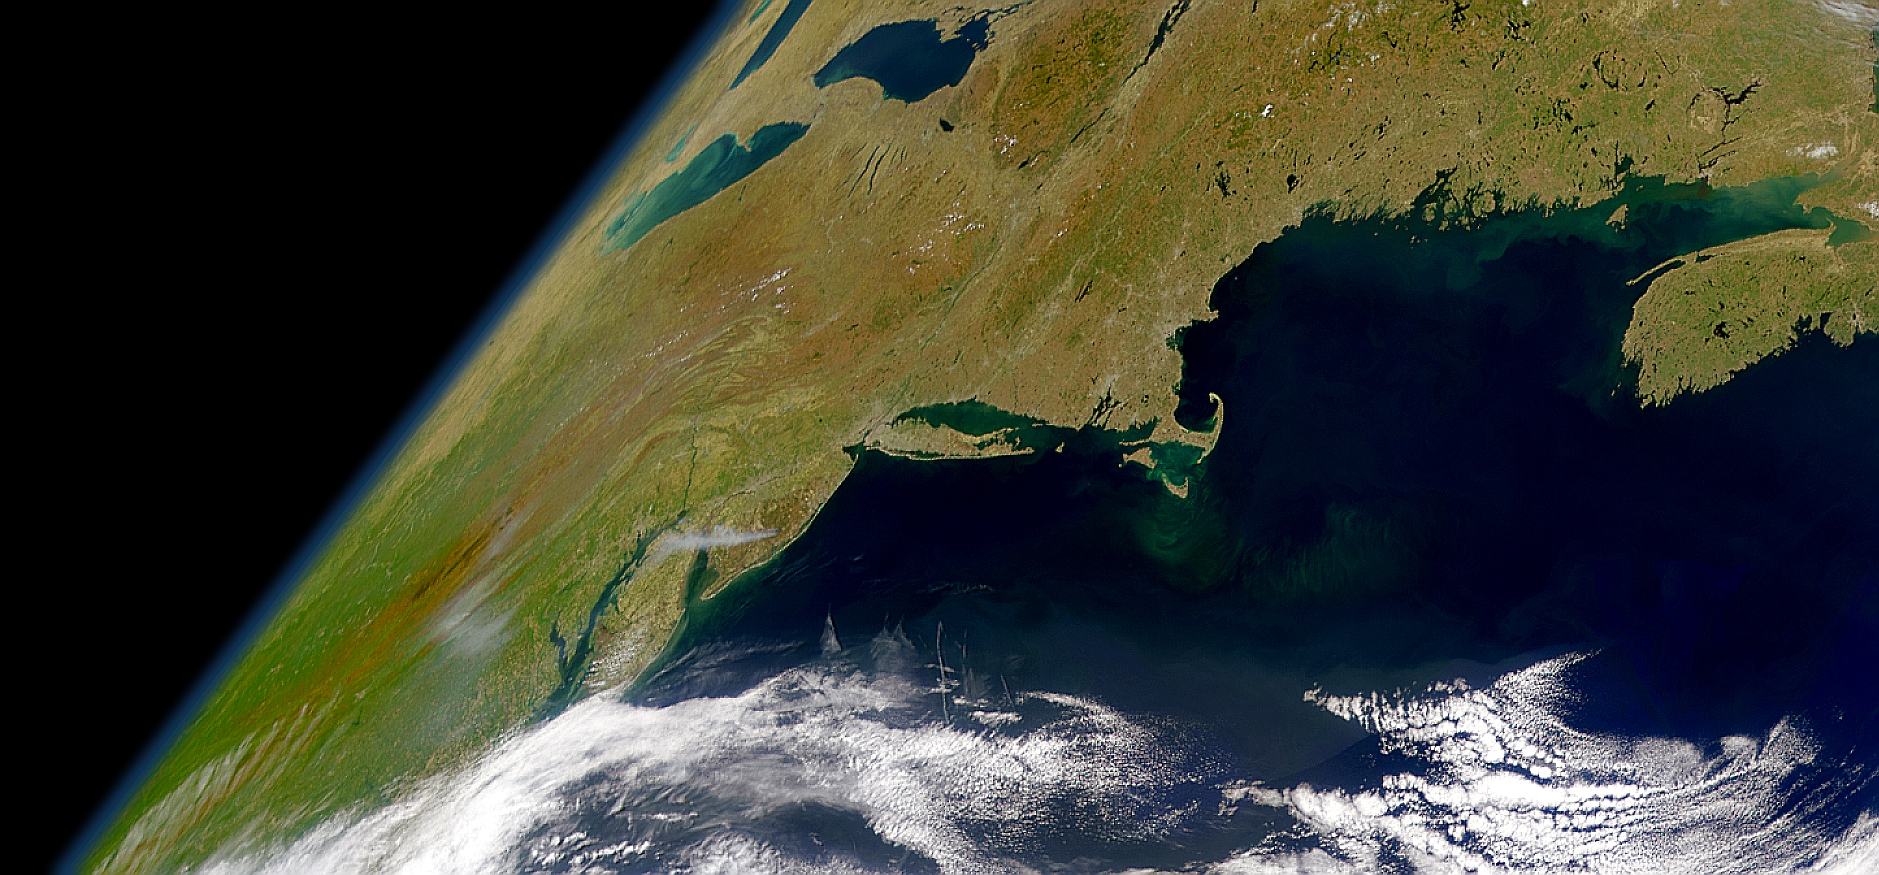 New Jersey Smoke Plume - related image preview